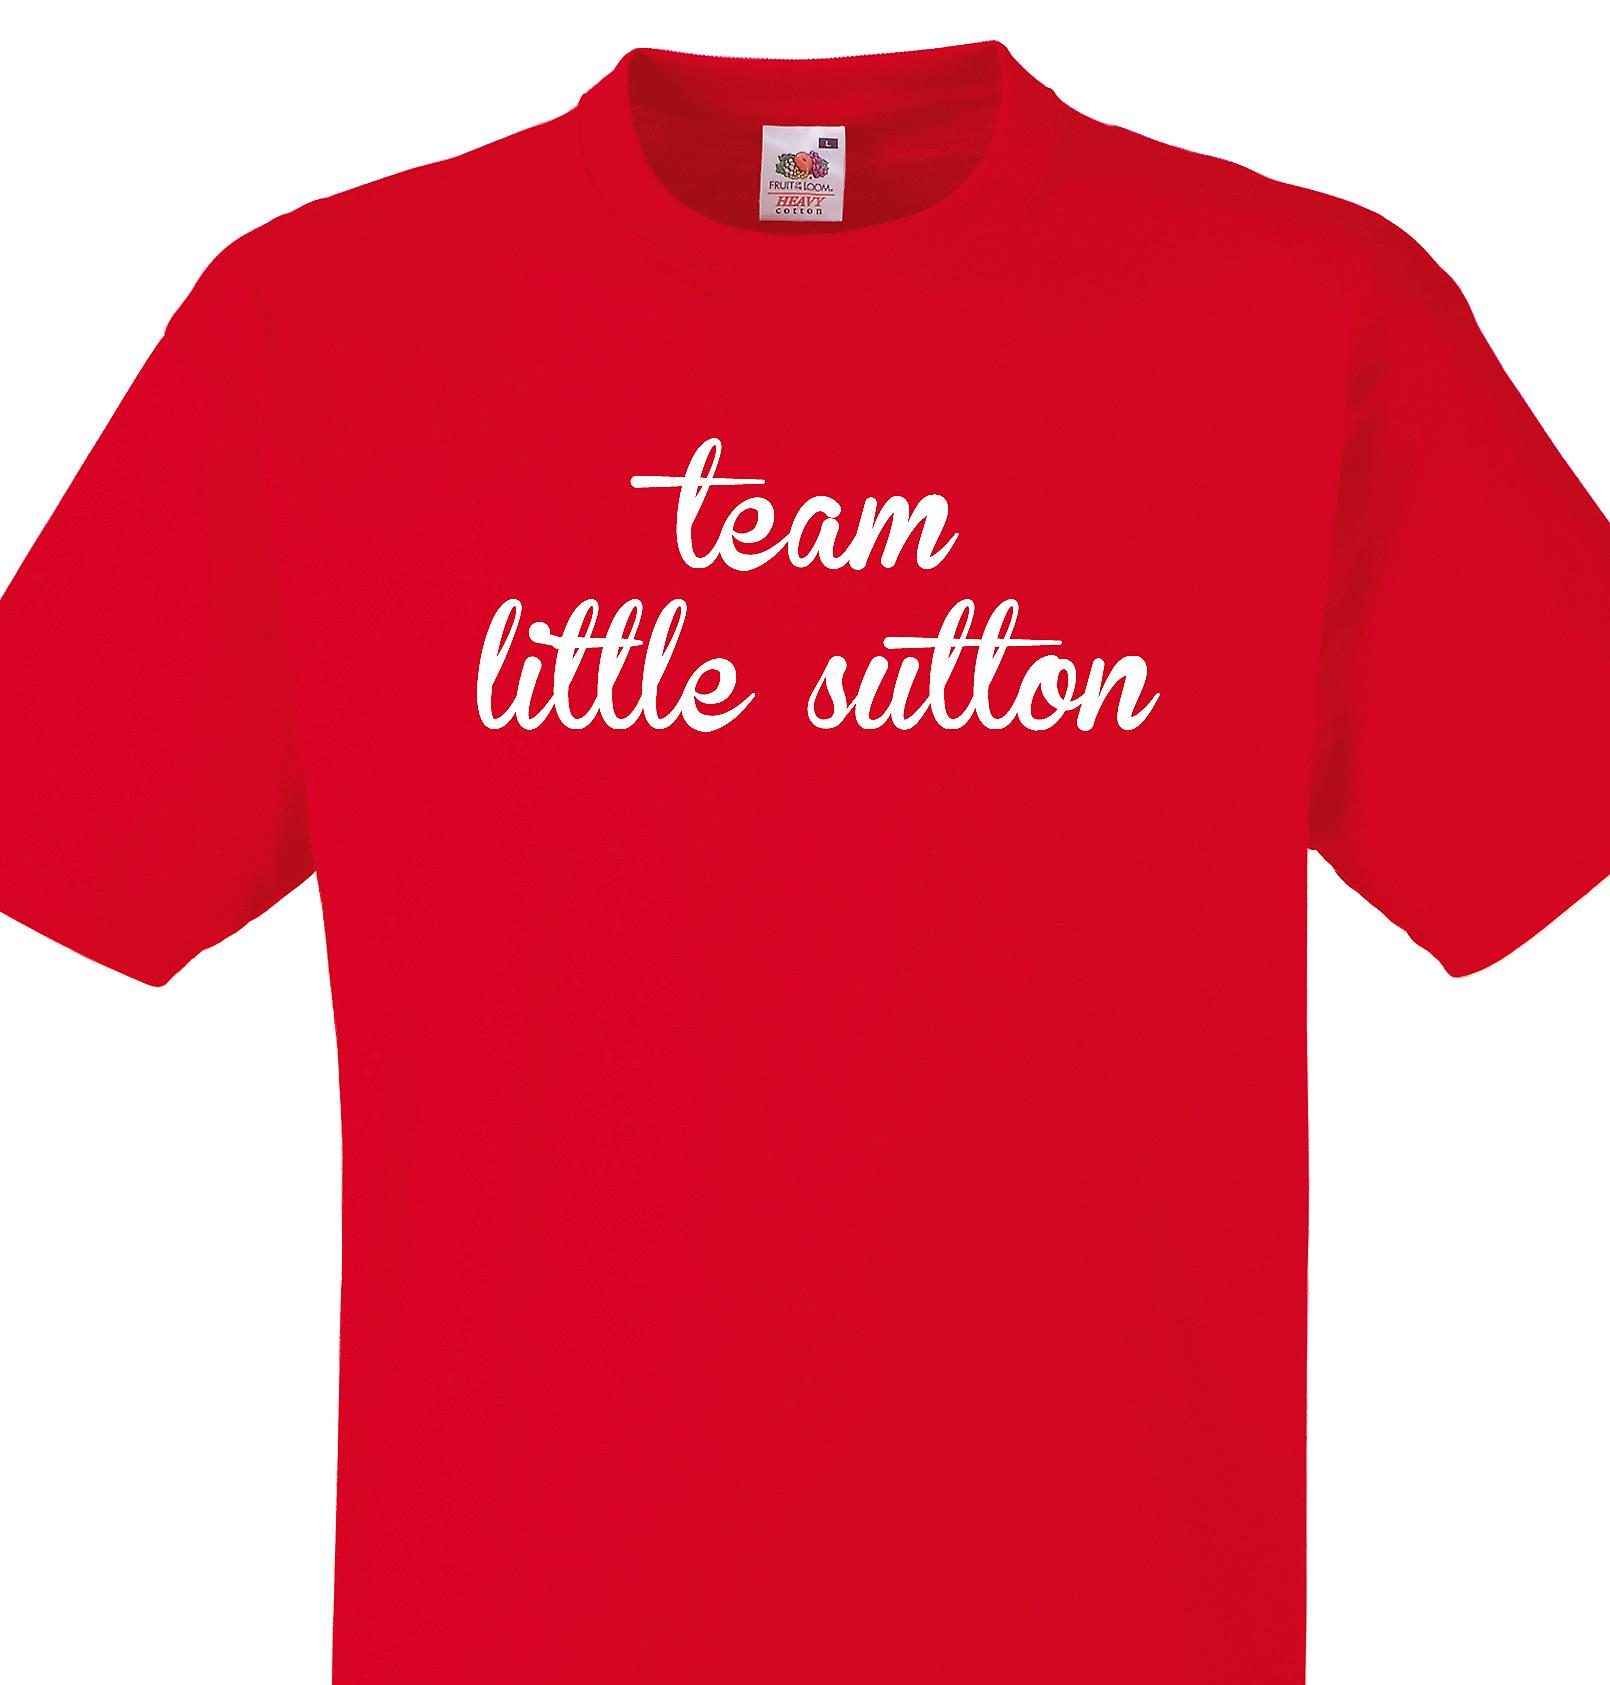 Team Little sutton Red T shirt